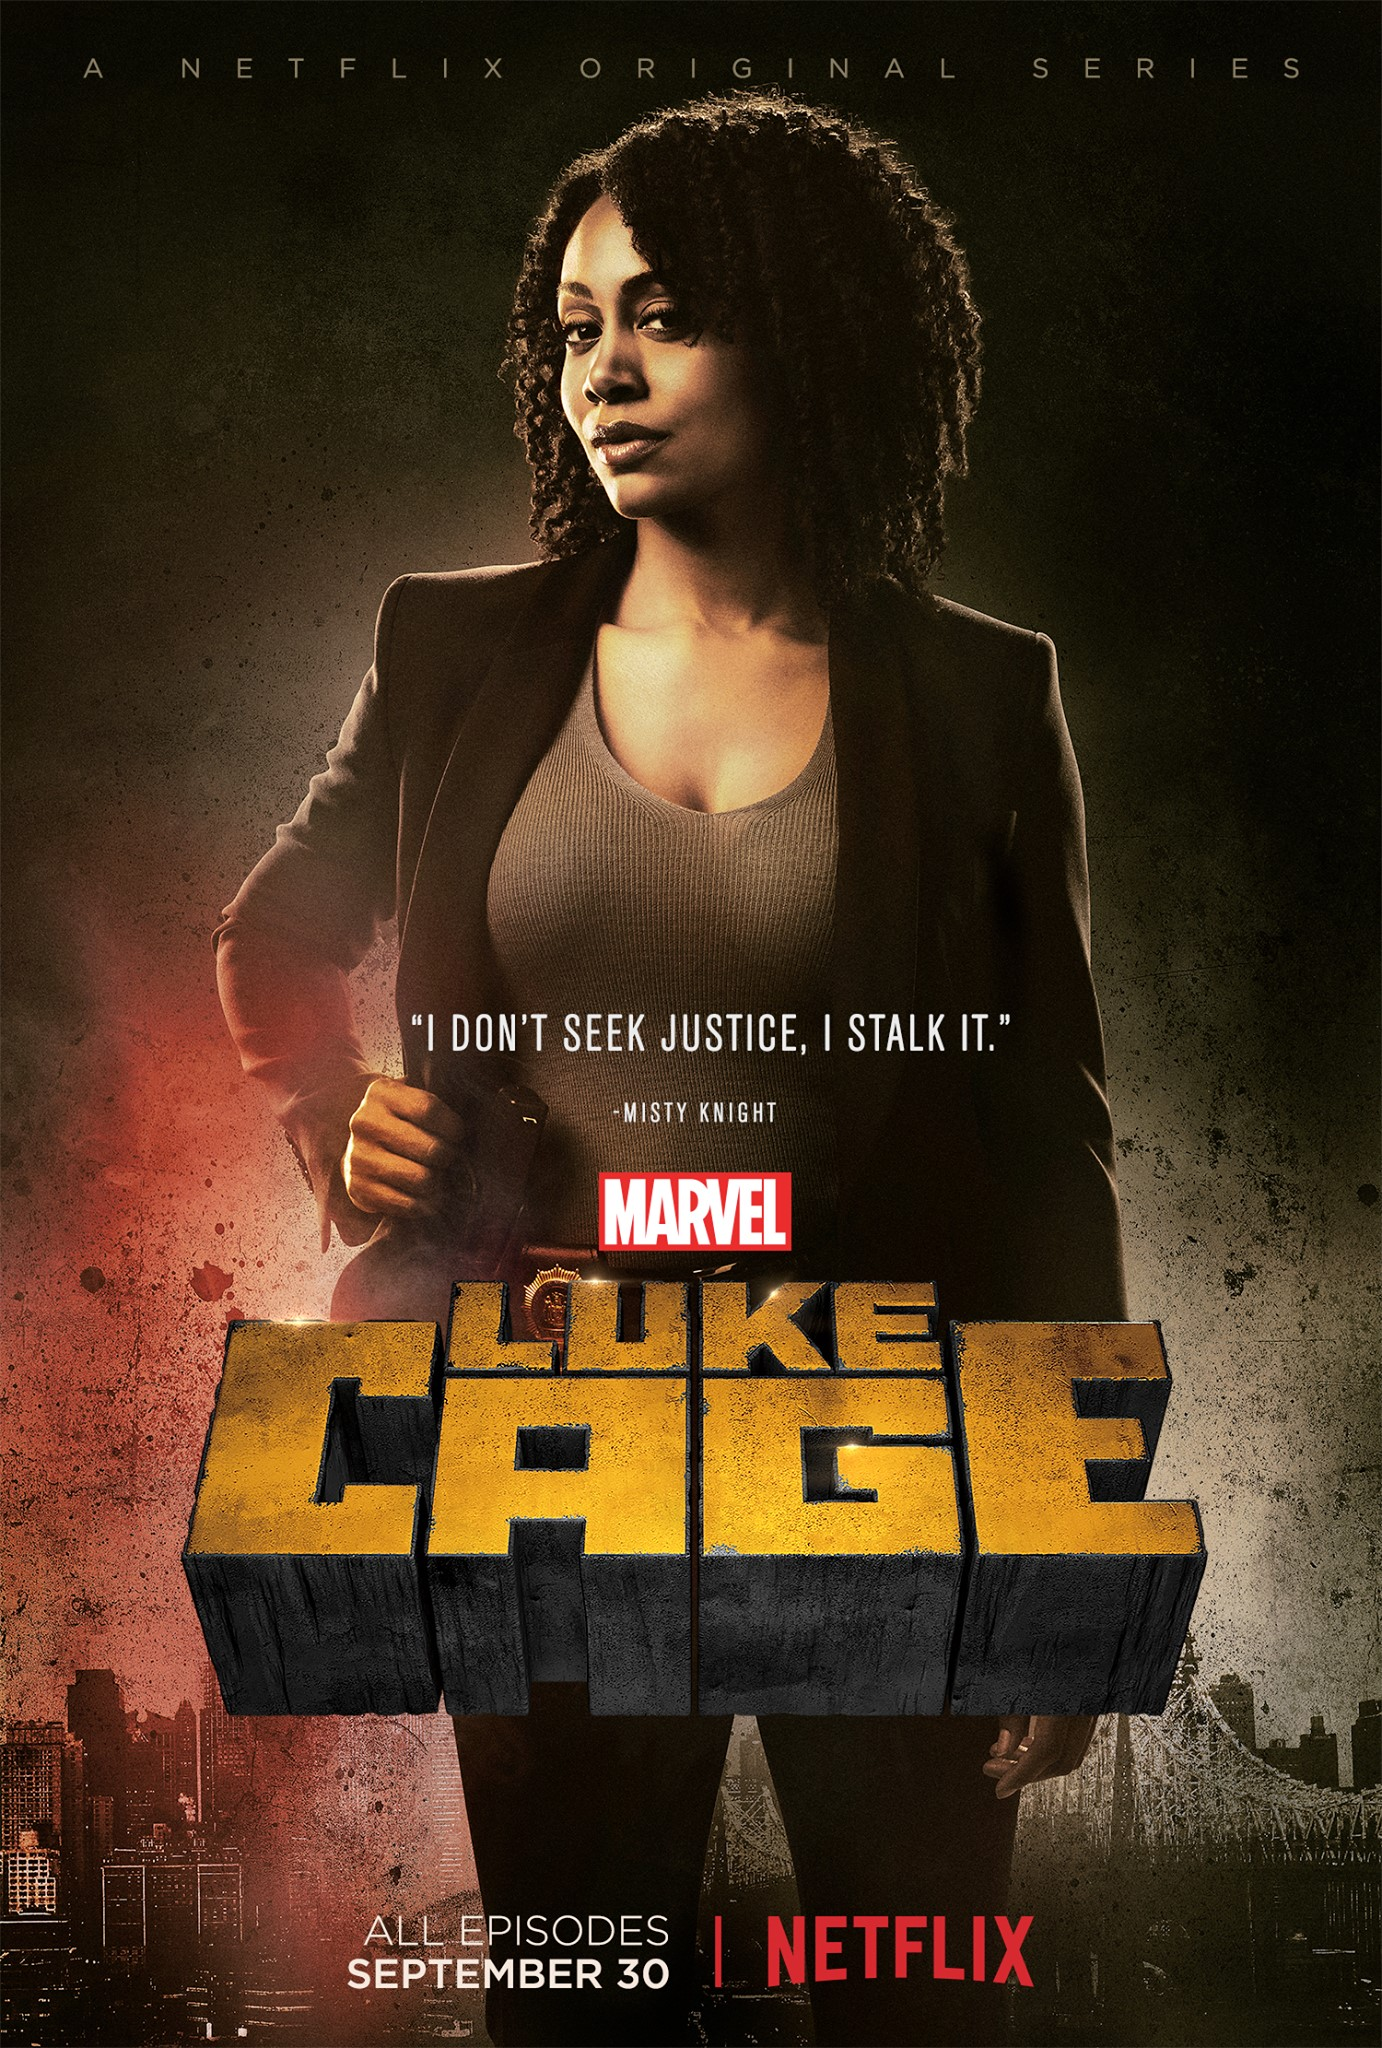 Character poster for Misty Knight in Marvel's Luke Cage!